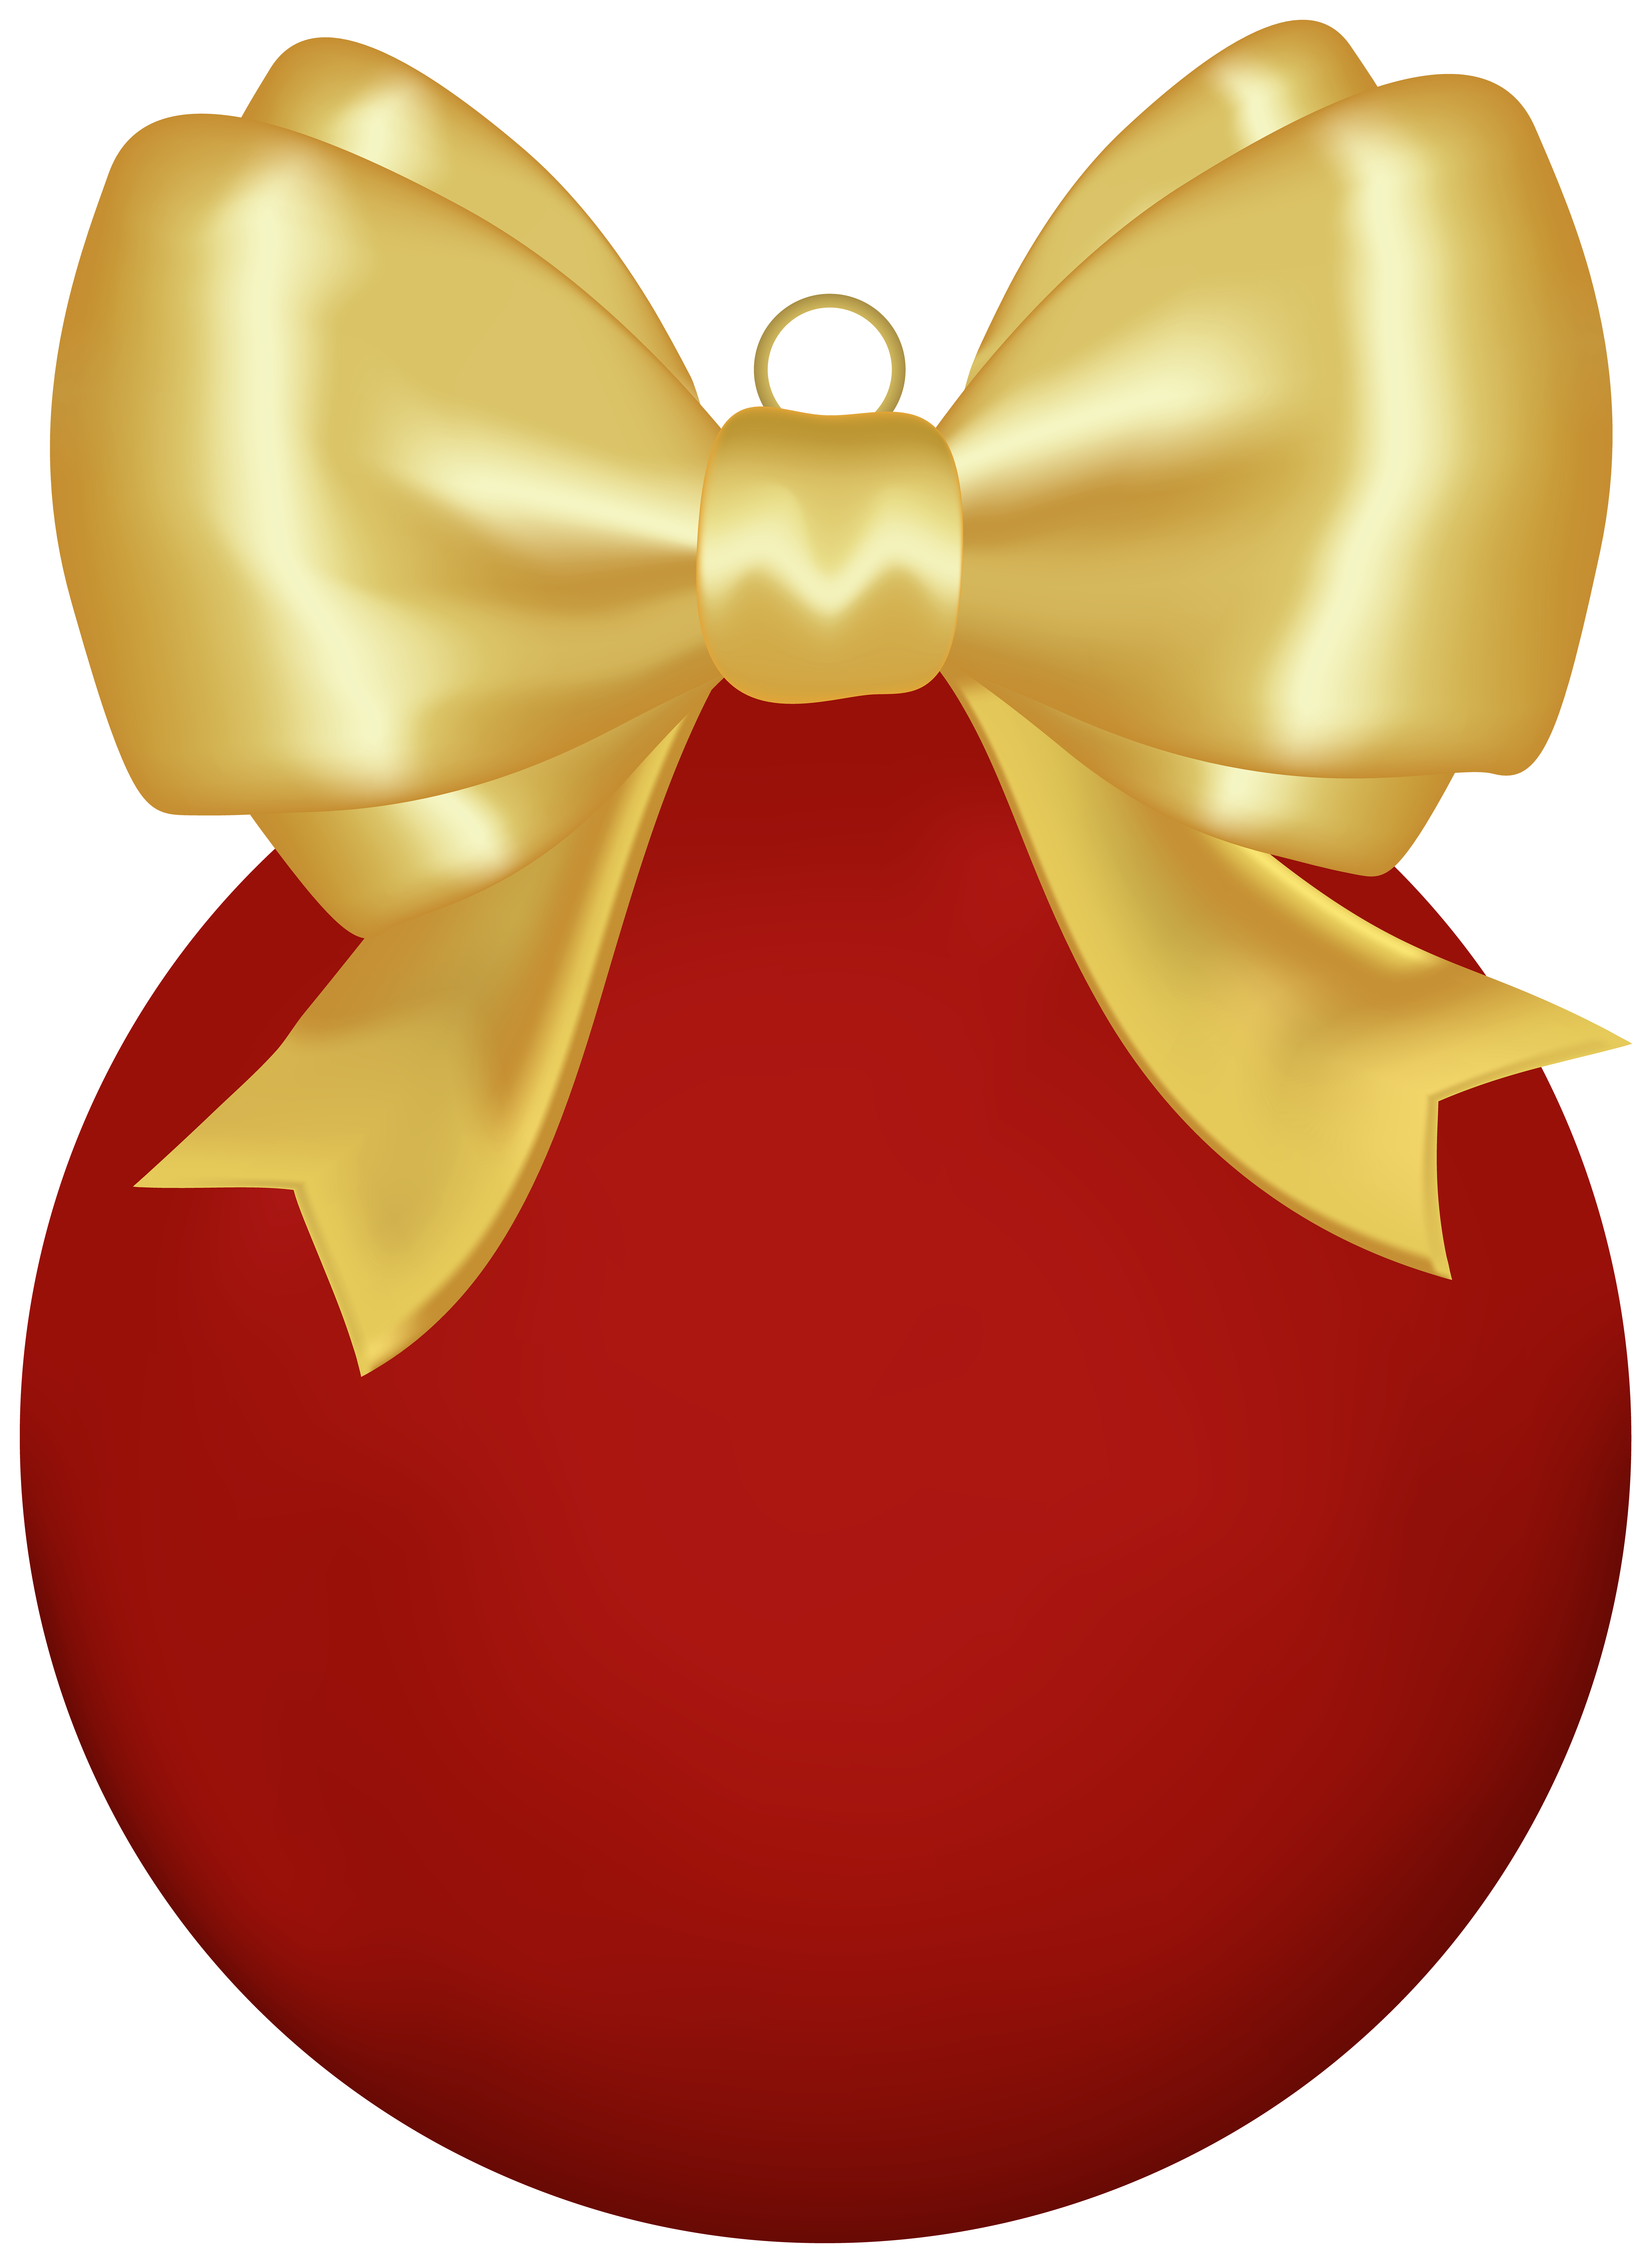 Christmas Red Ball Png - Christmas Red Ball with Bow PNG Clipart | Gallery Yopriceville ...